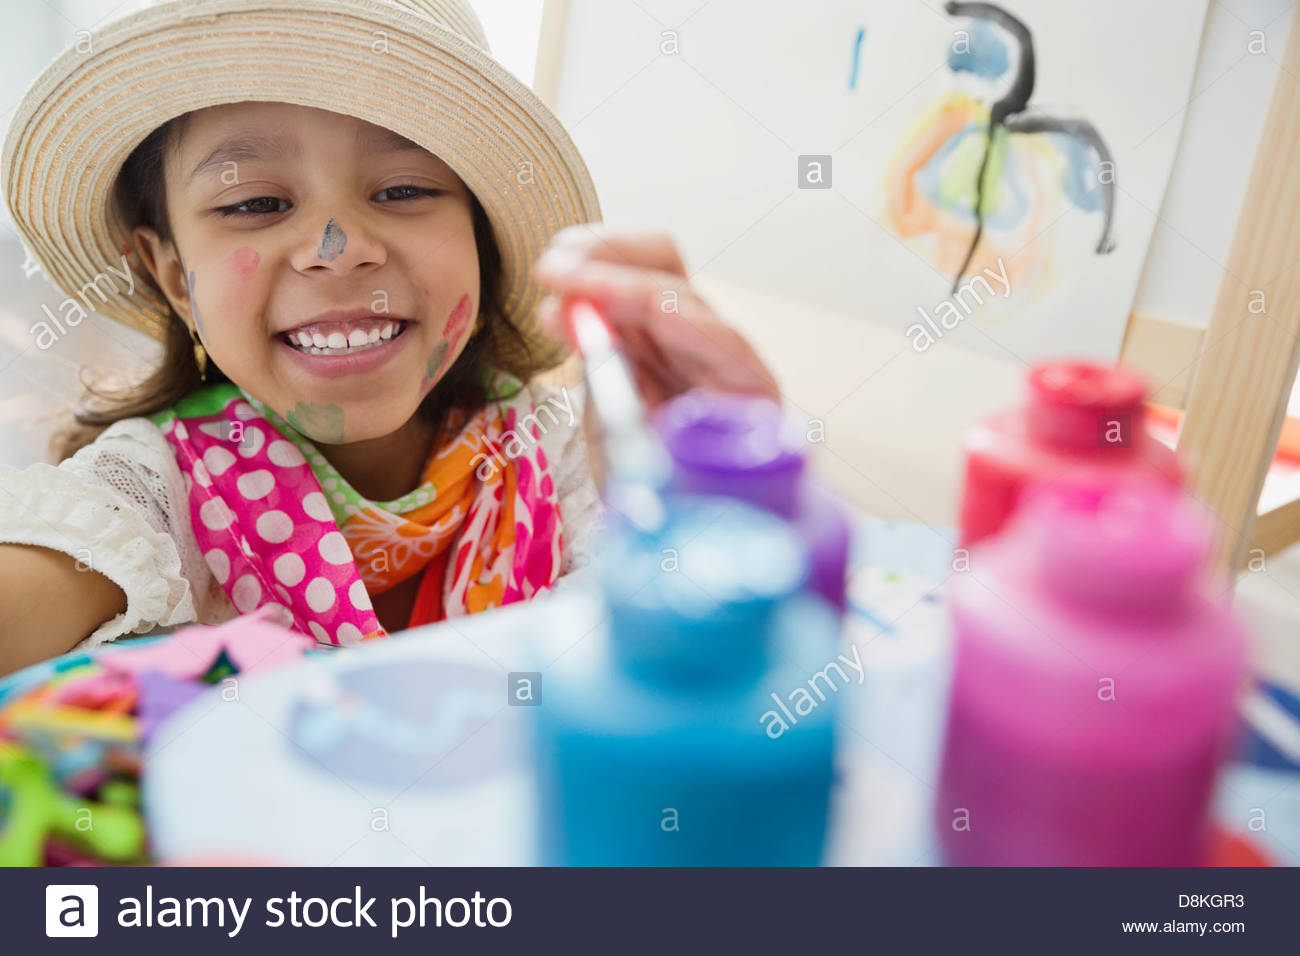 Young artist reaching for paints - Stock Image